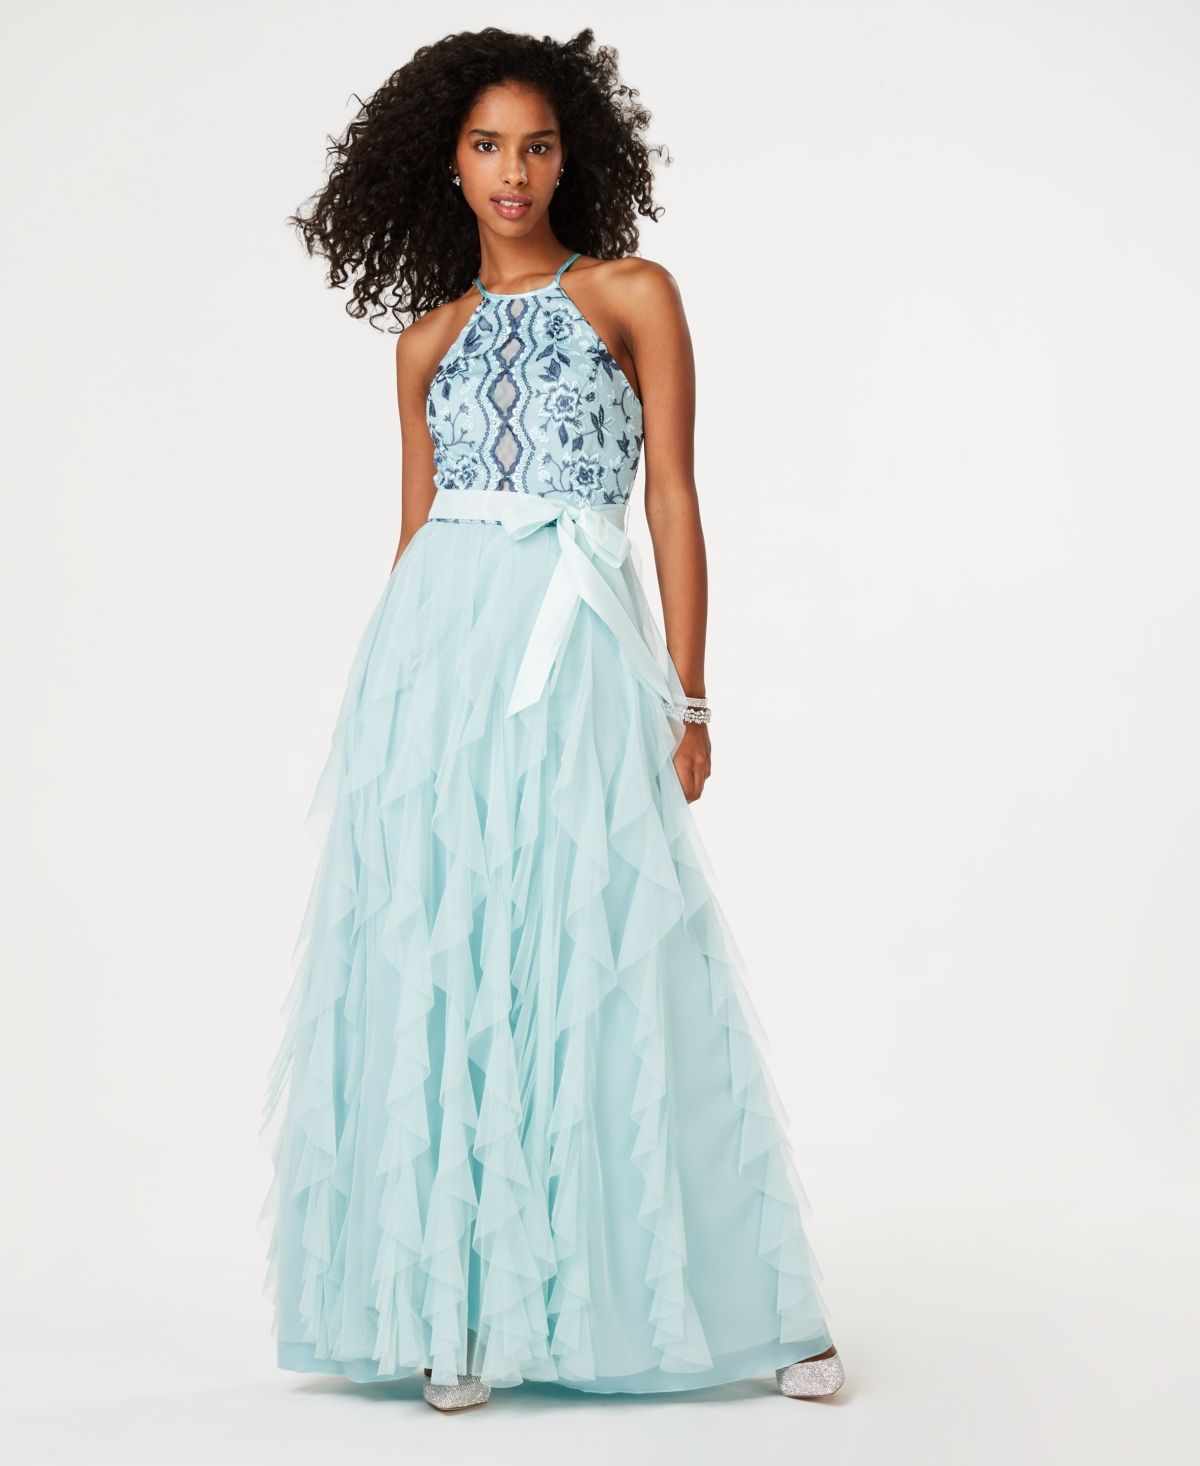 Layered-Skirt Gown